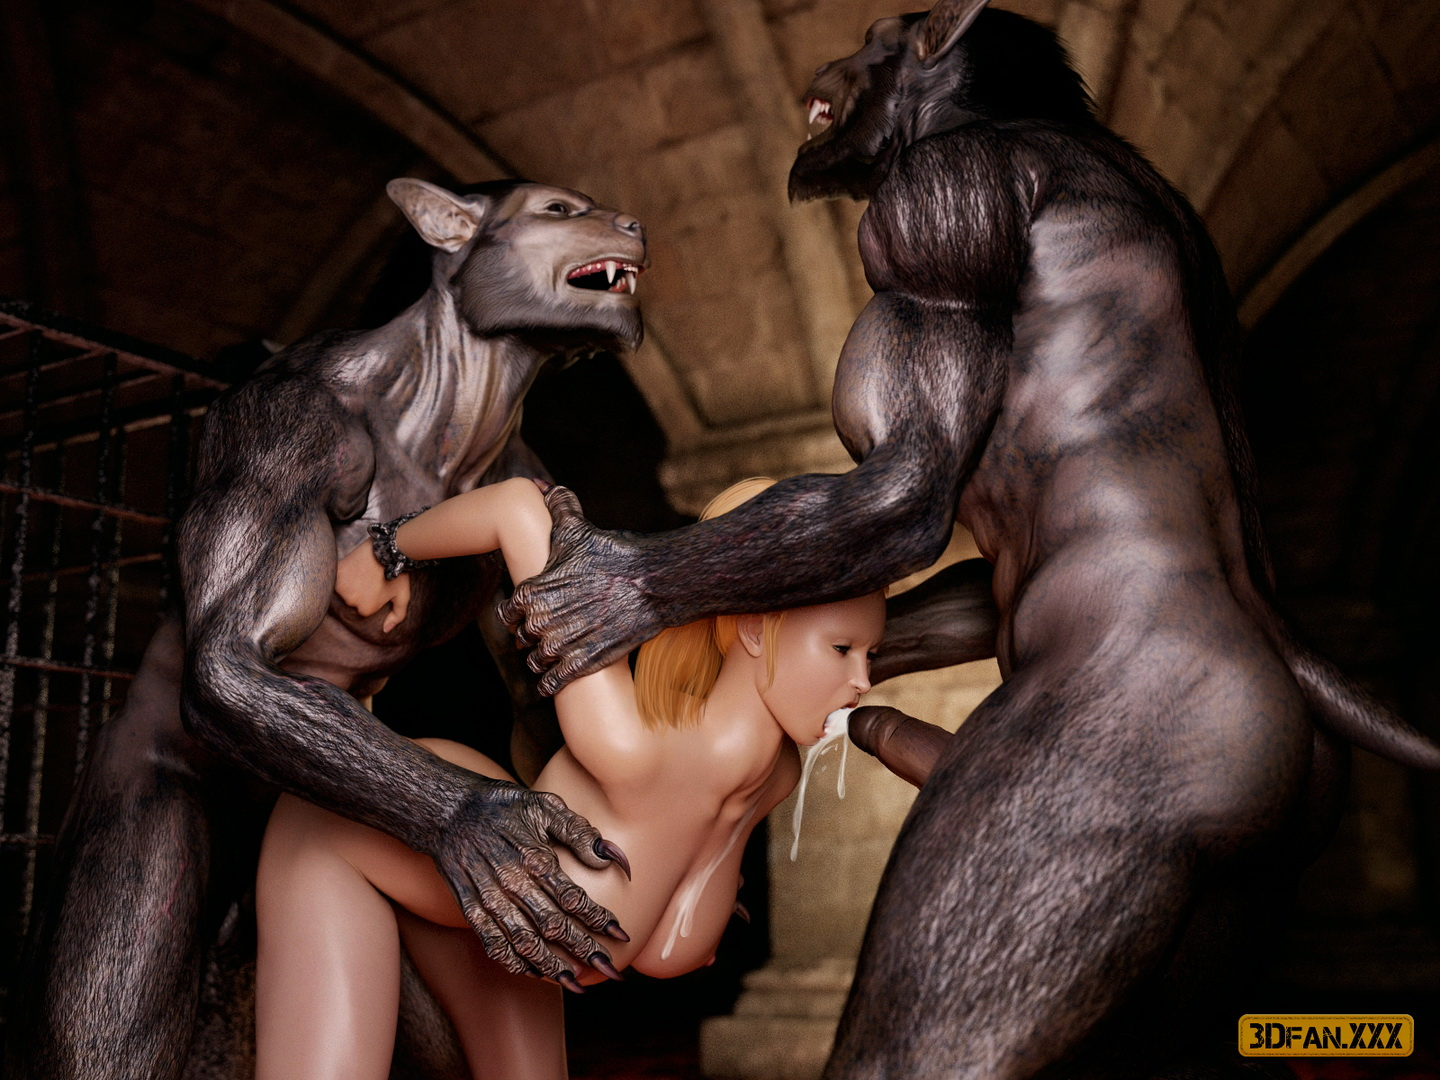 3d monster pic porn videos hentai pictures